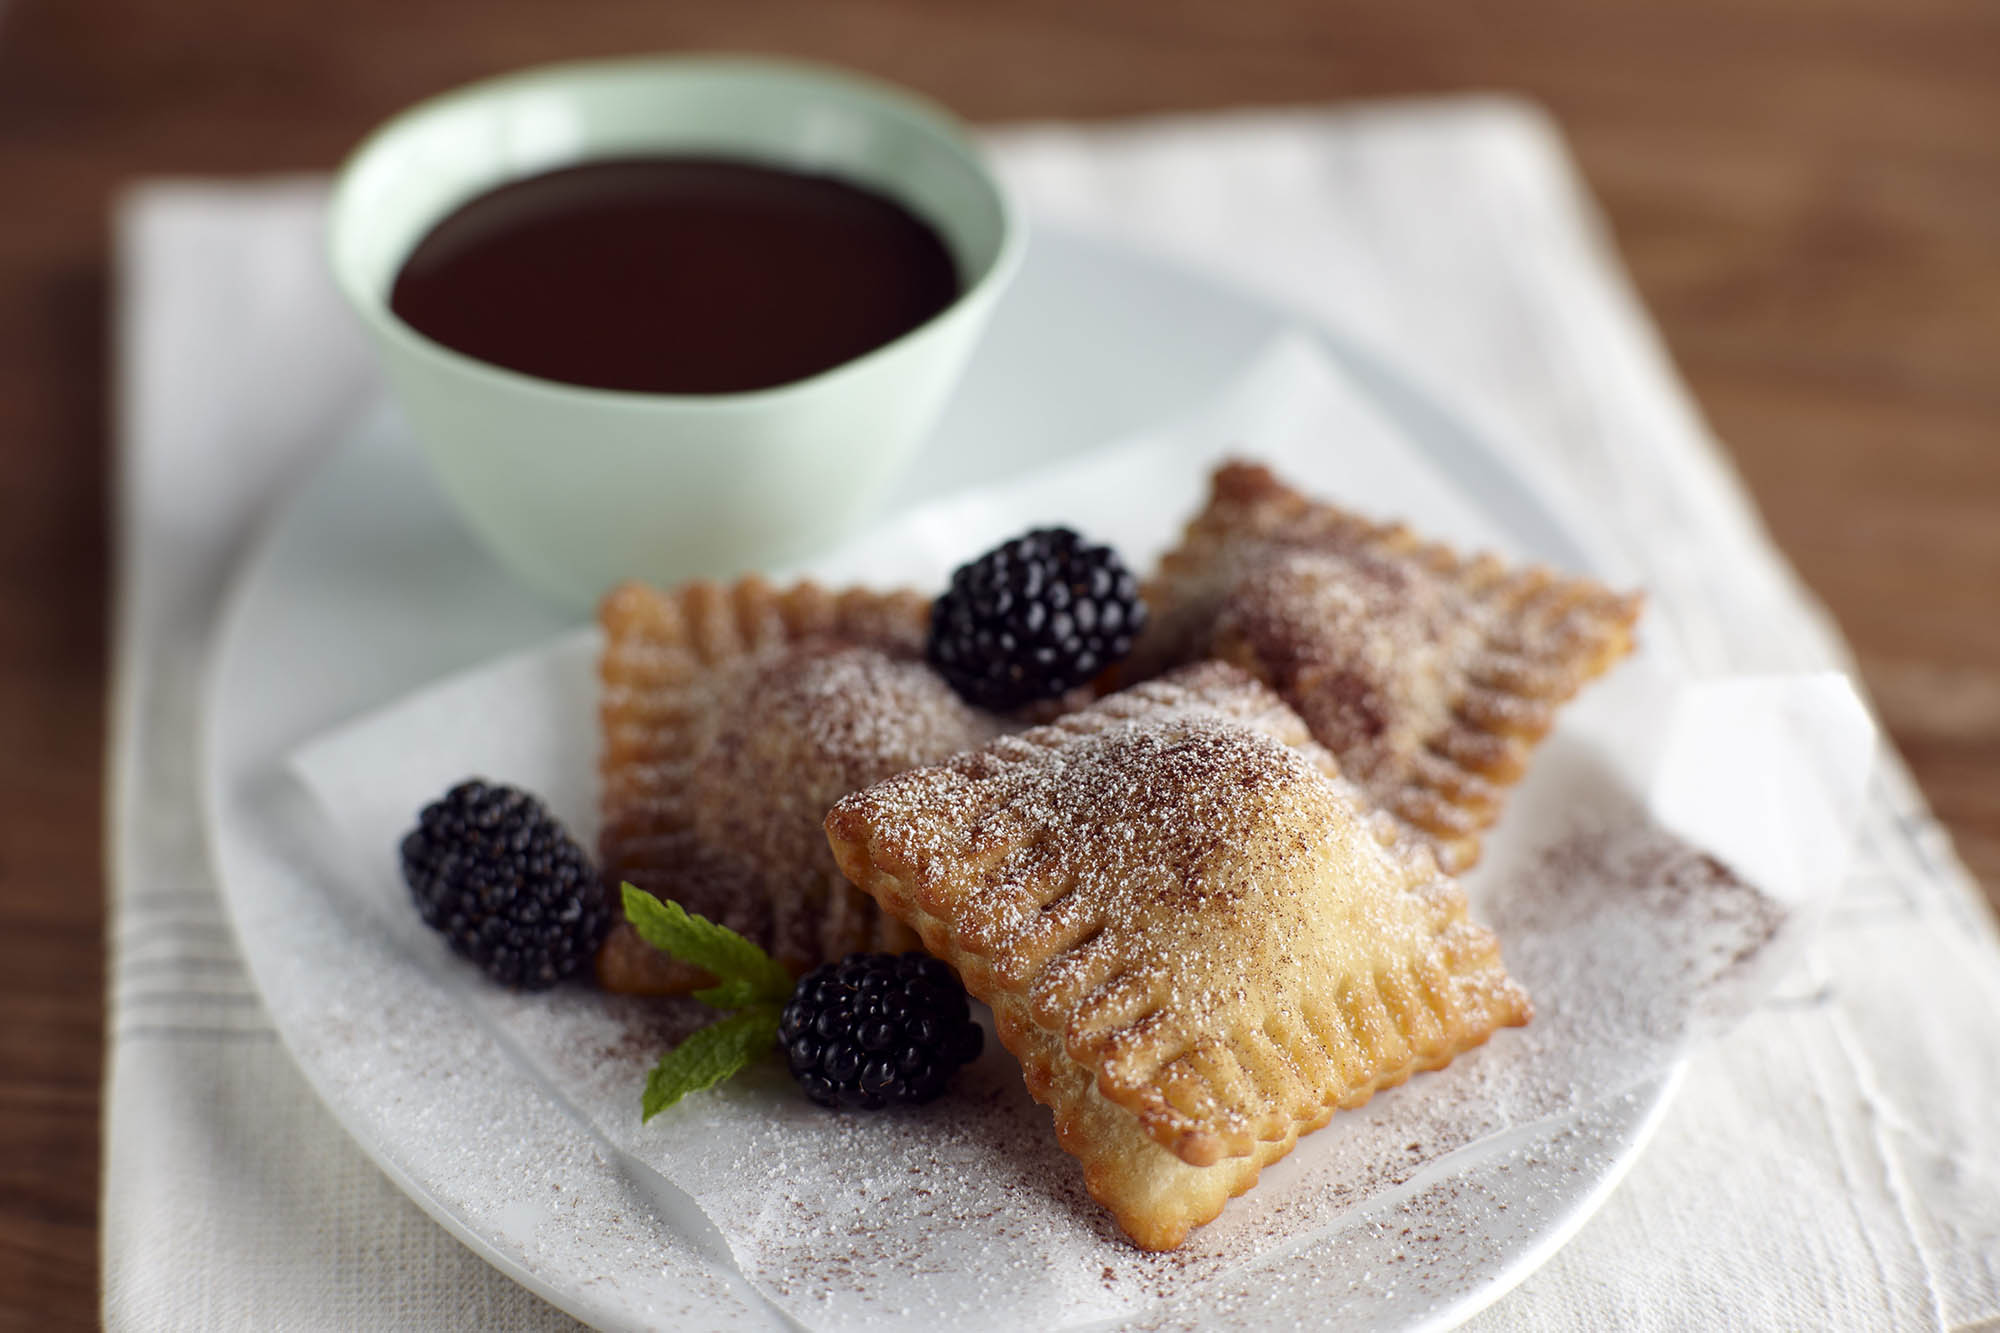 Fried Blackberry Ravioli with Chocolate Fondue